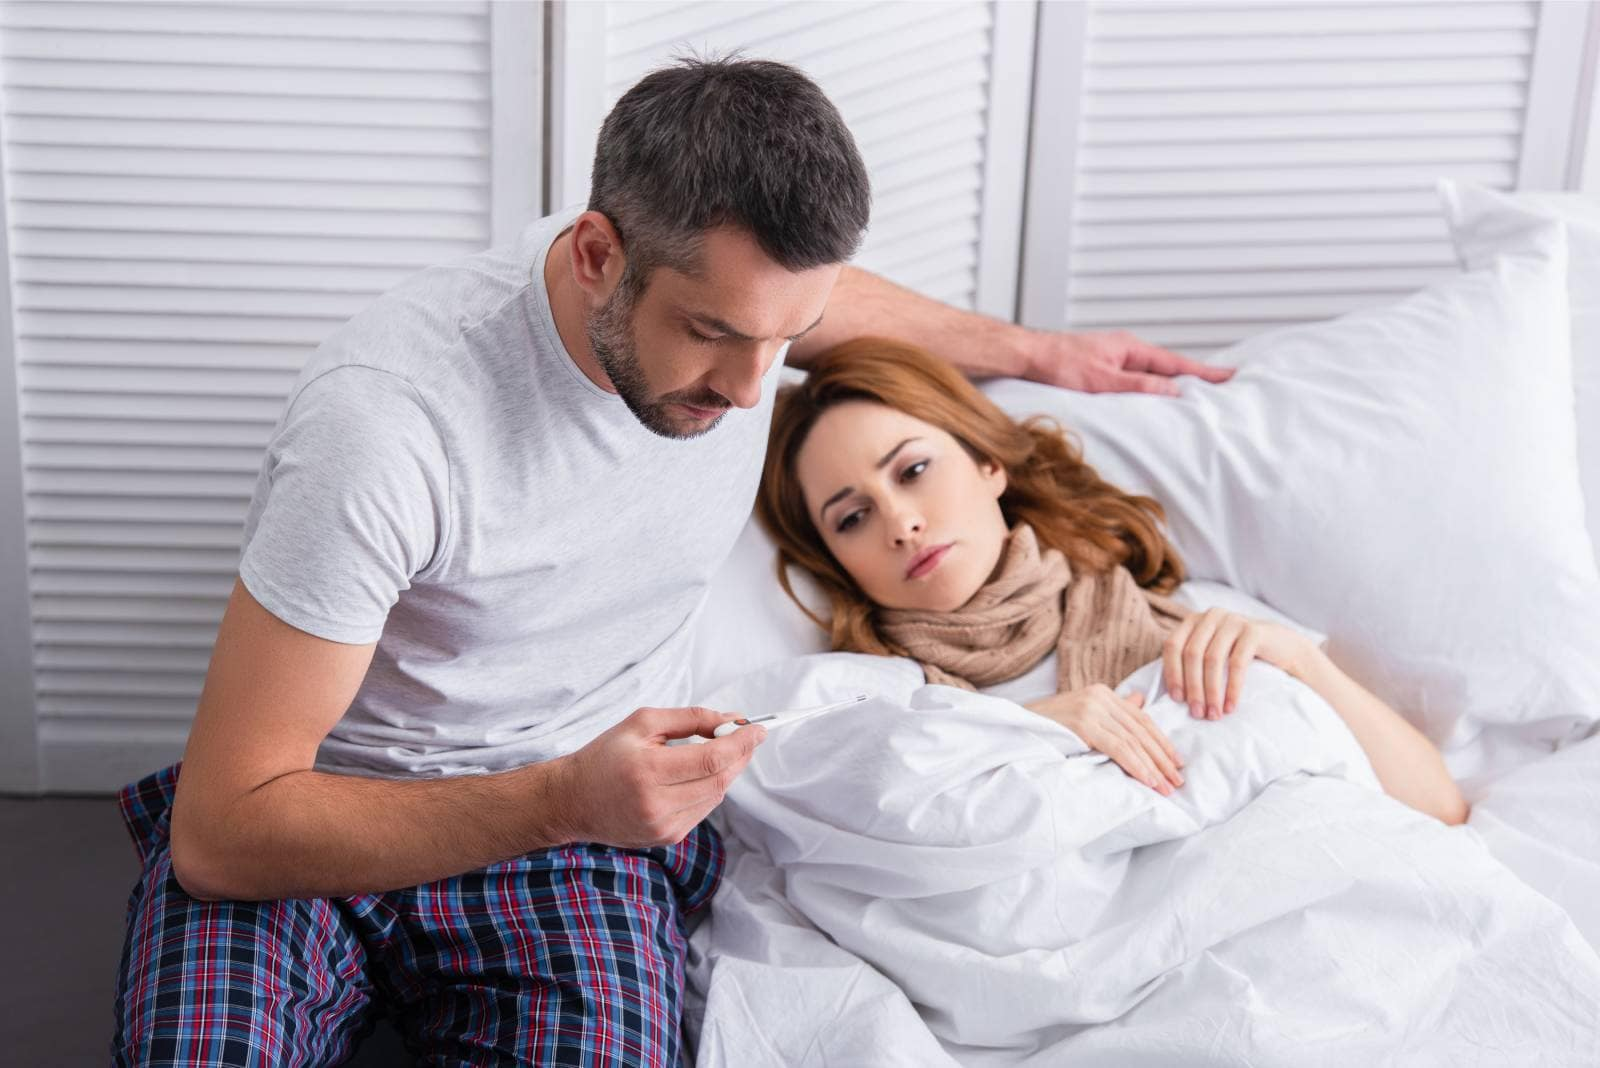 man checking on temperature on the thermometer of a sick woman lying on bed besiide him